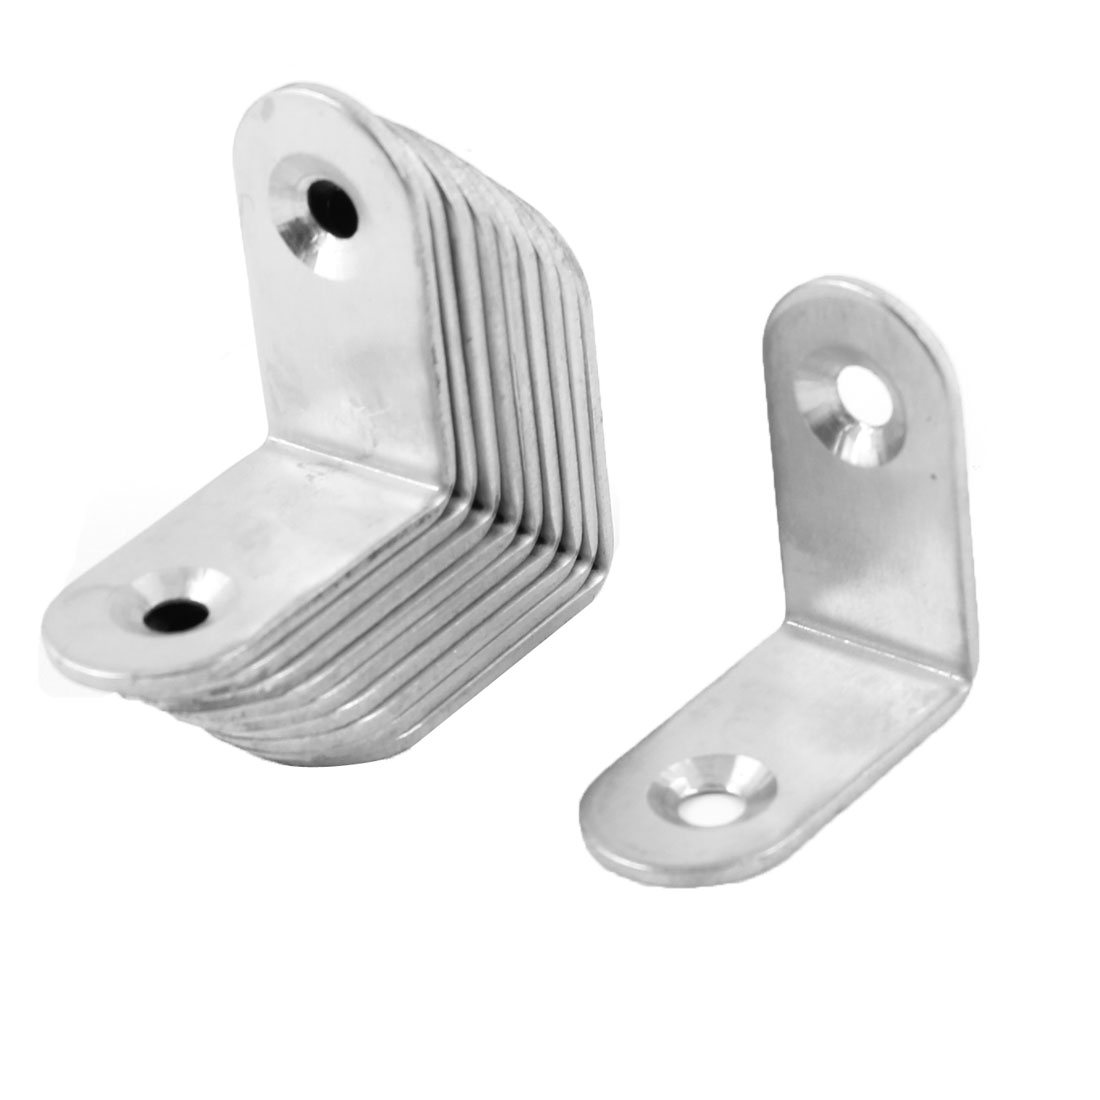 10pcs Stainless Steel Right Angle Bracket Corner Brace Joint 30 x 30mm Silver